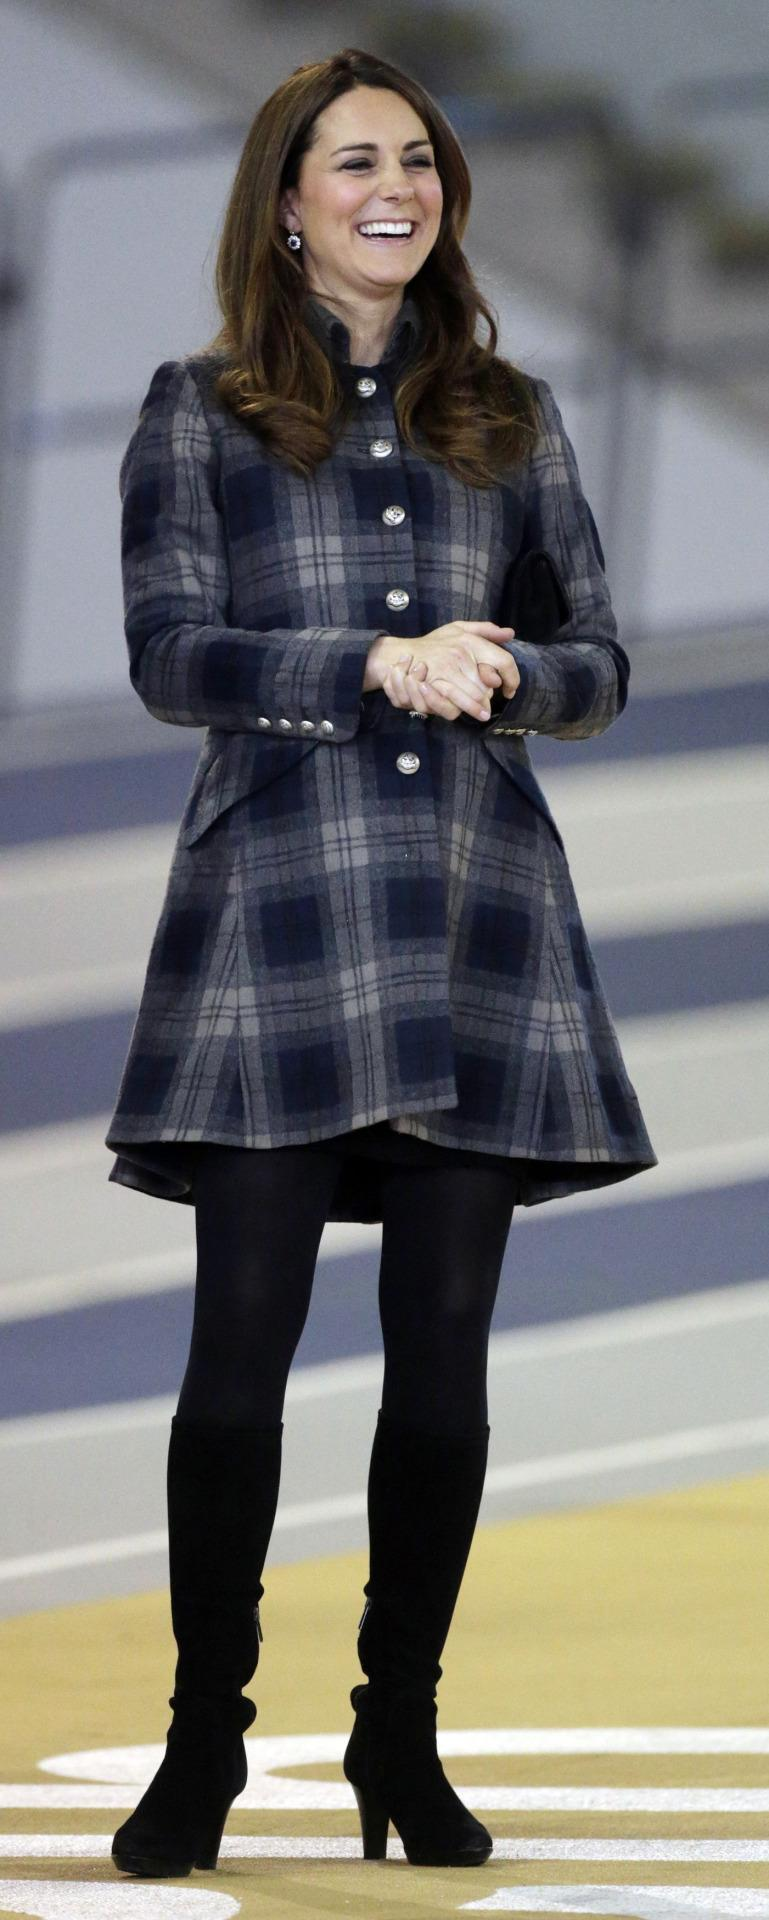 <p>The Duchess spent a day in Scotland dressed in a tartan coat by British label, Moloh. She also wore her trust Aquatalia heeled boots and carried a black suede clutch. </p><p><i>[Photo: PA]</i></p>